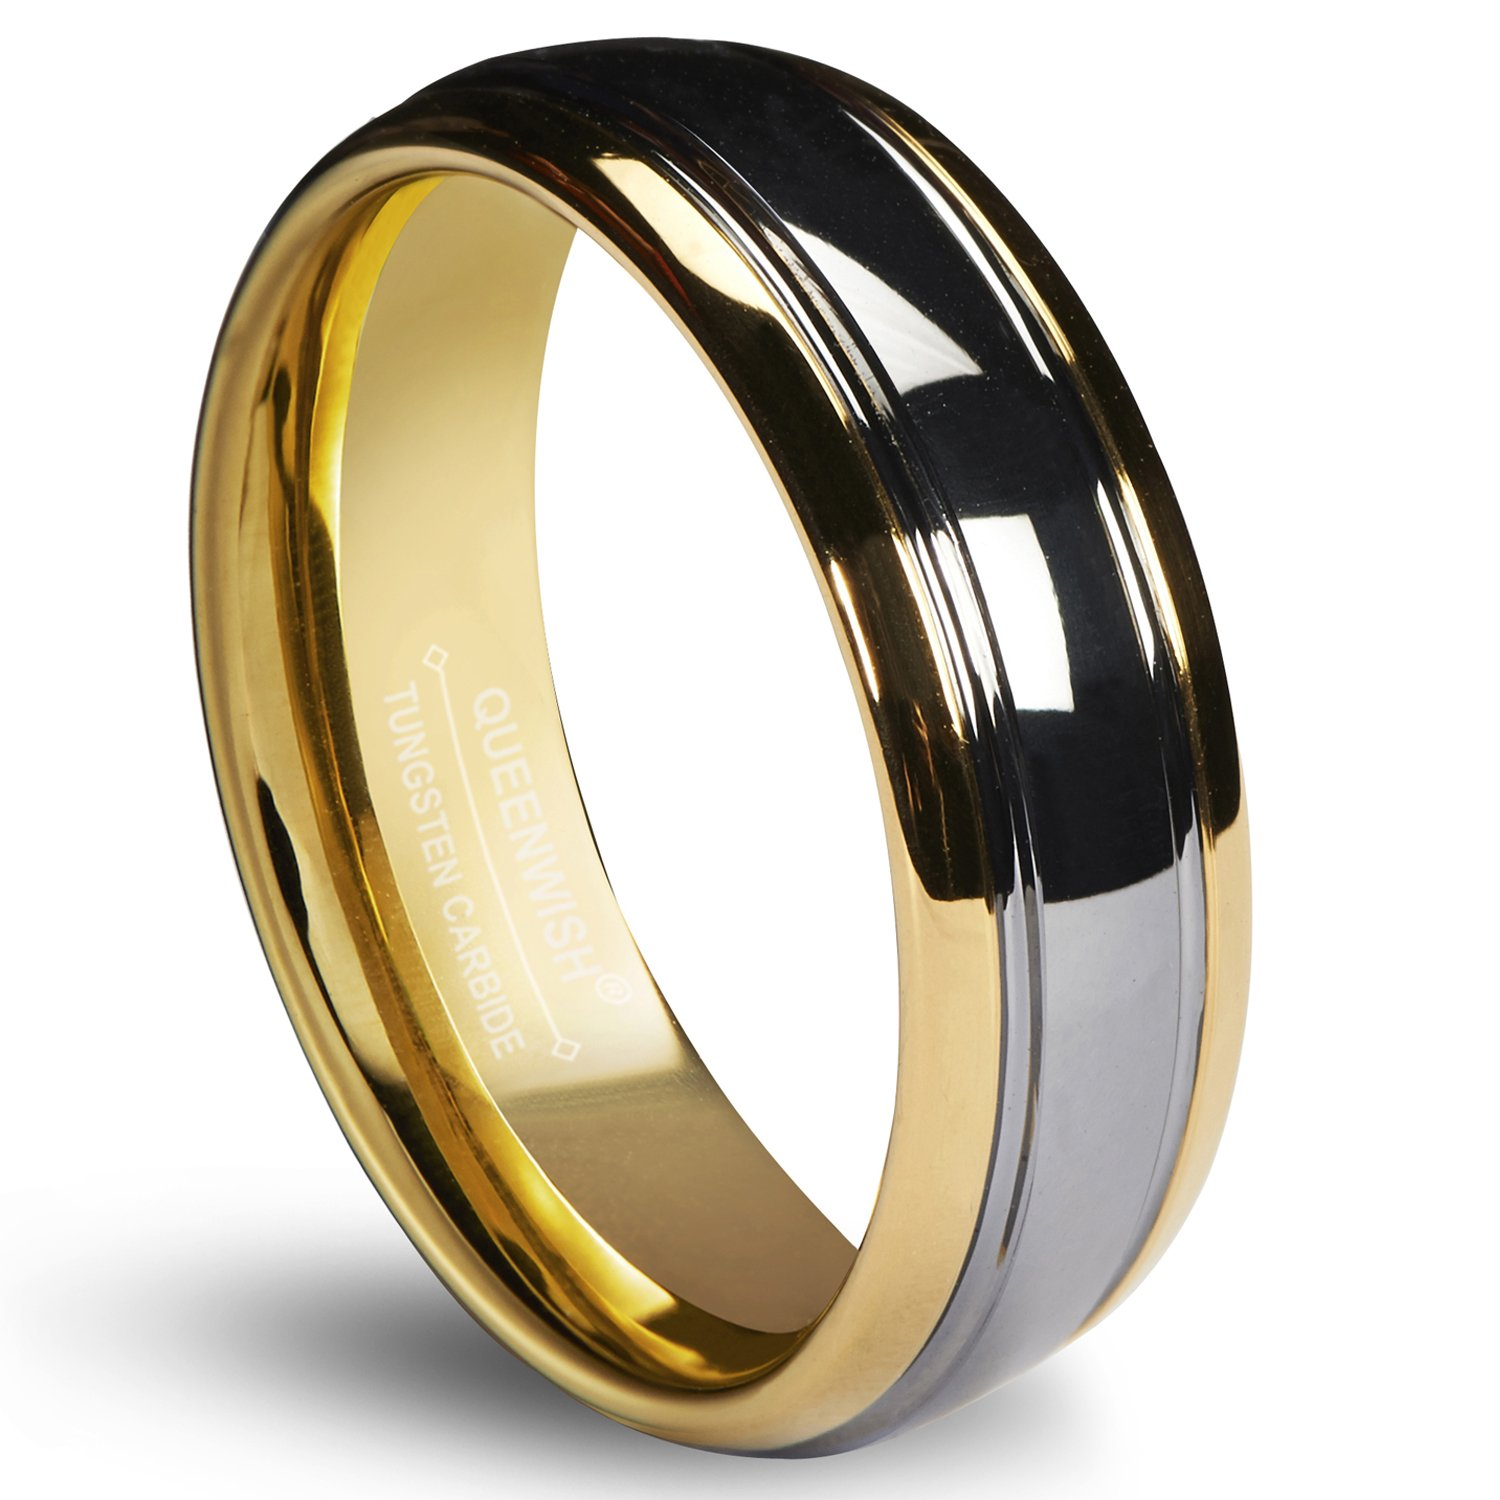 Queenwish 6mm Tungsten Carbide Wedding Band Gold Silver Dome Promise Rings for Couples Size 9.5